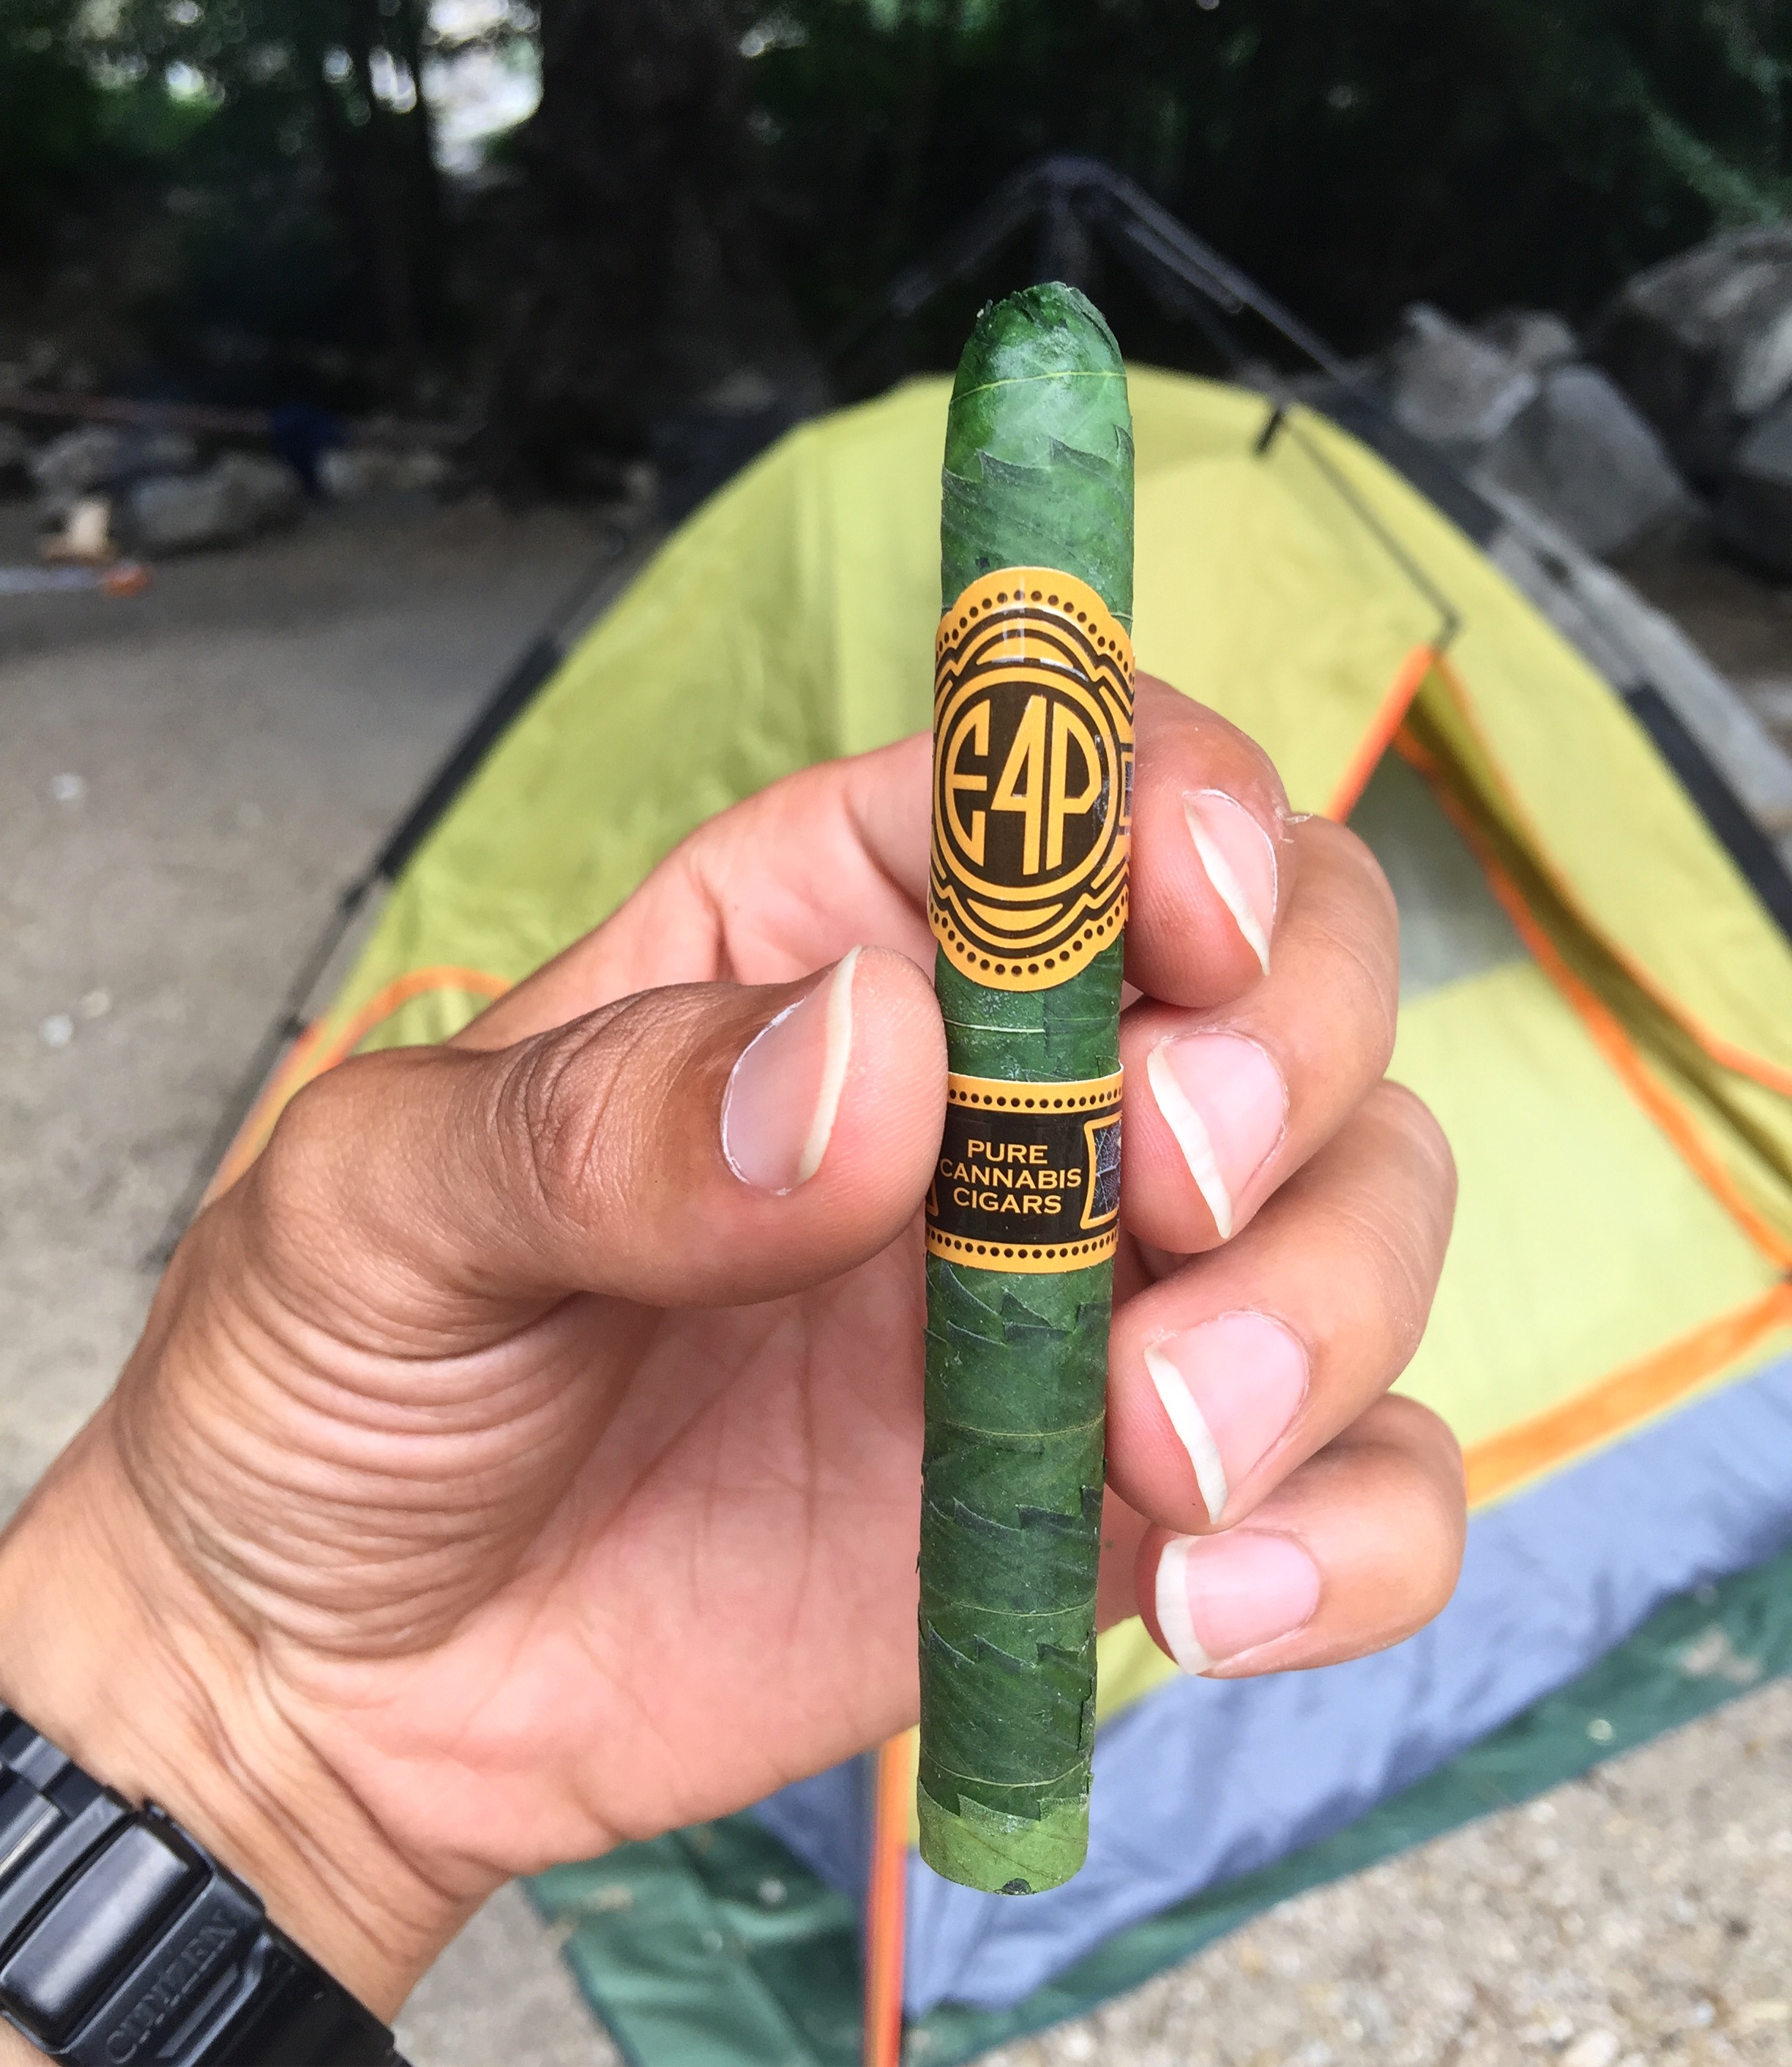 E4P Pure Cannabis Cigars